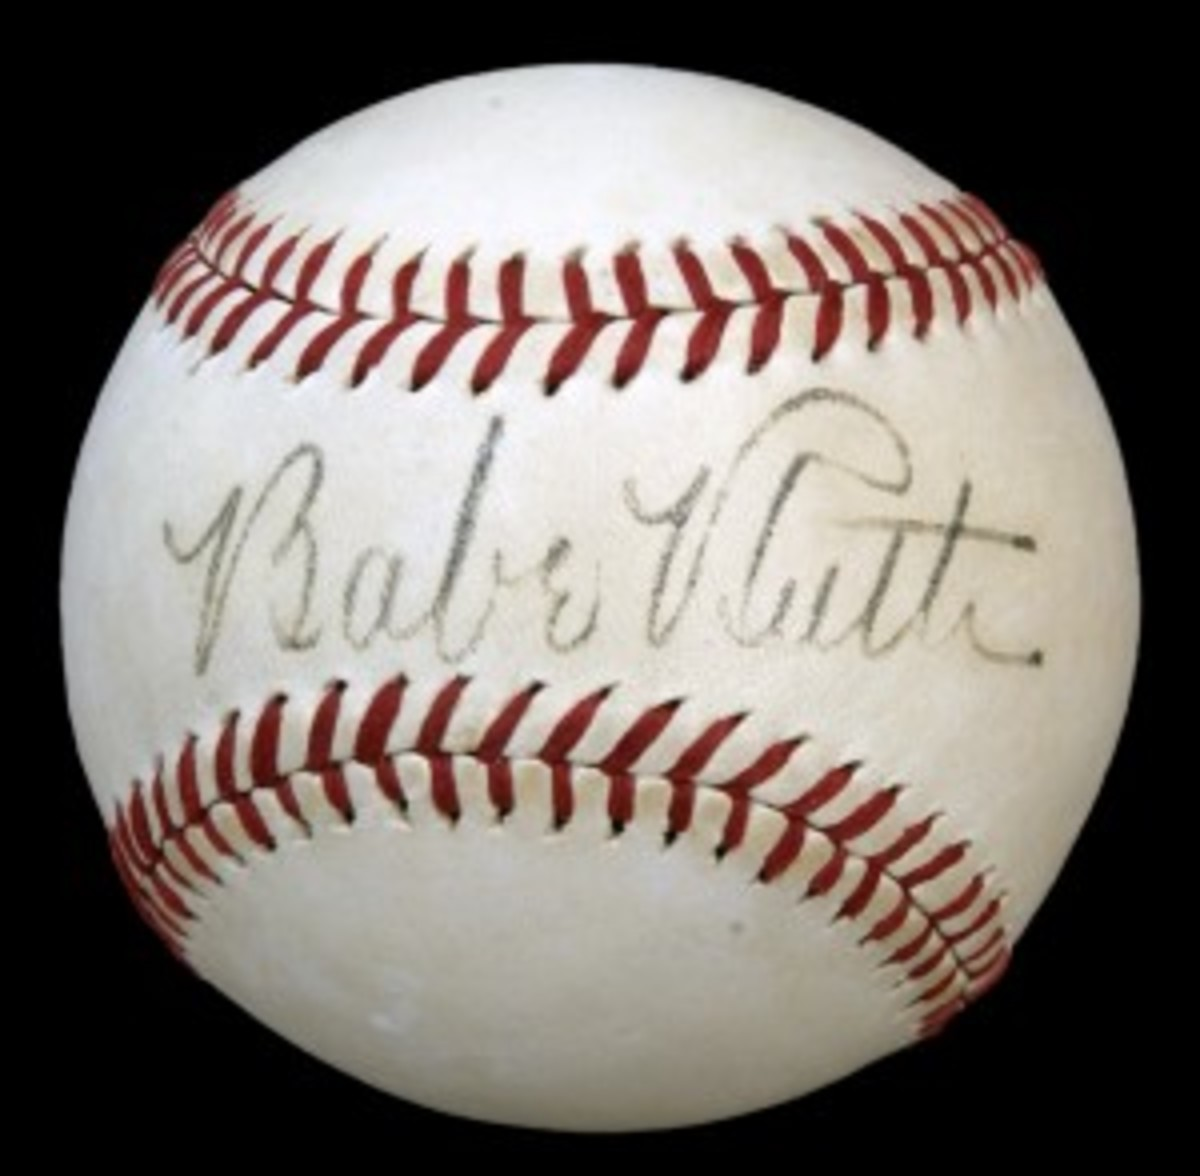 Baseball autographed by Babe Ruth